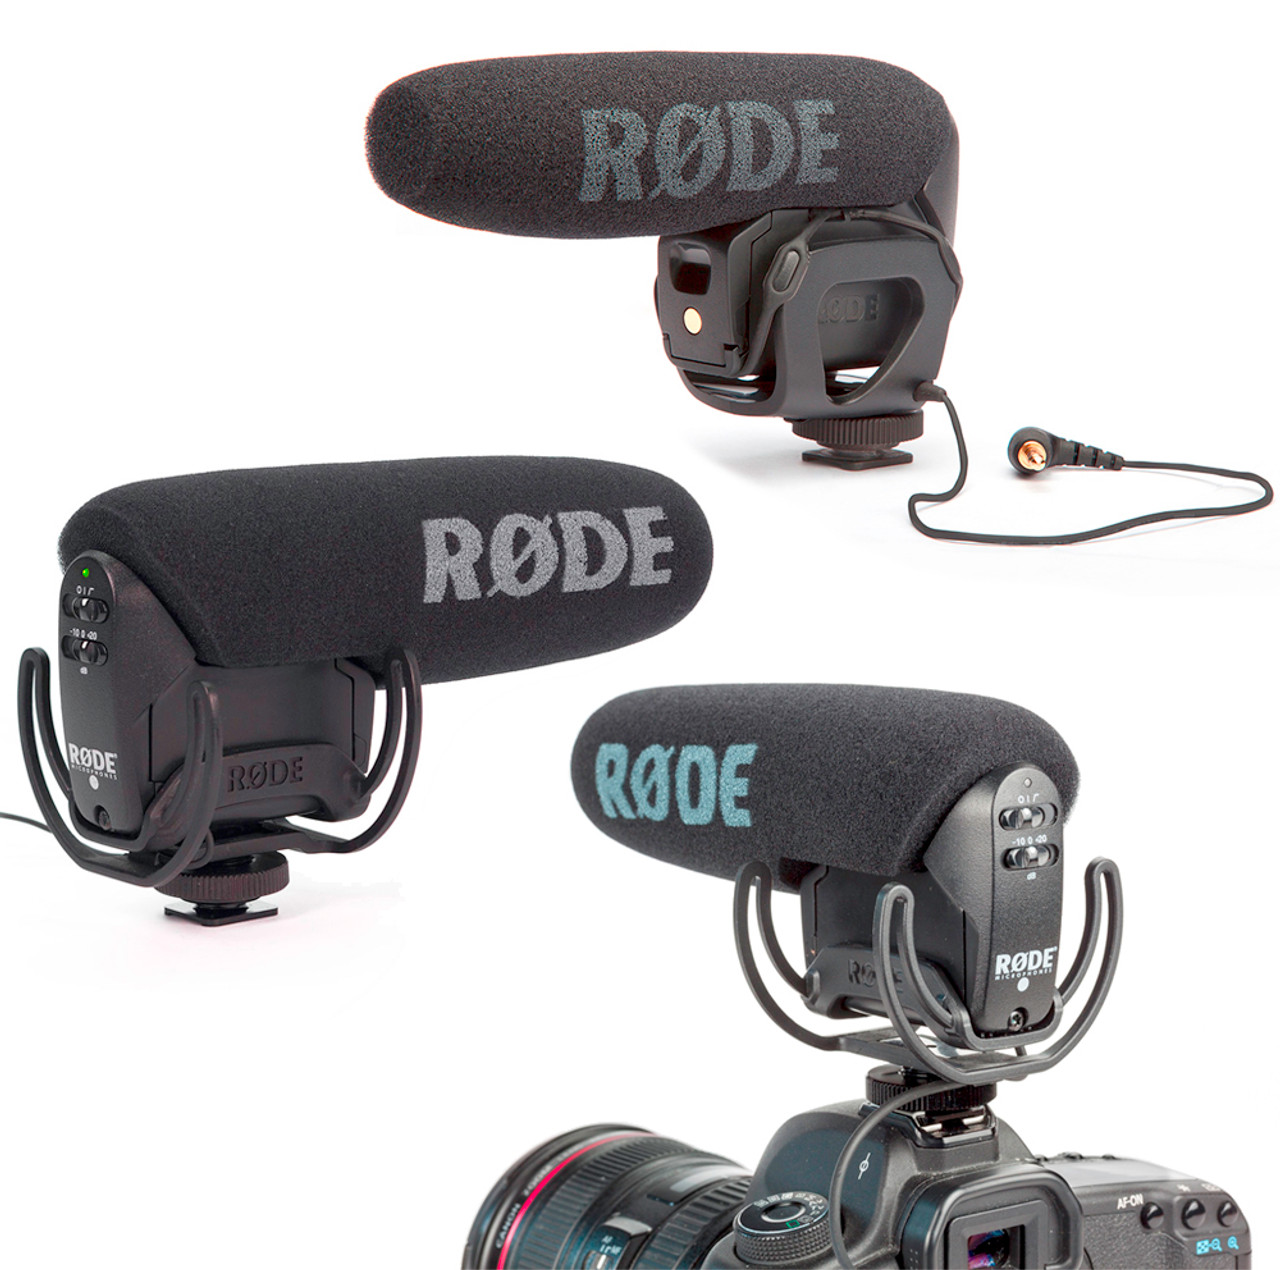 Steady Rode Shotgun Video Mic Selected Material Audio For Video Video Production & Editing